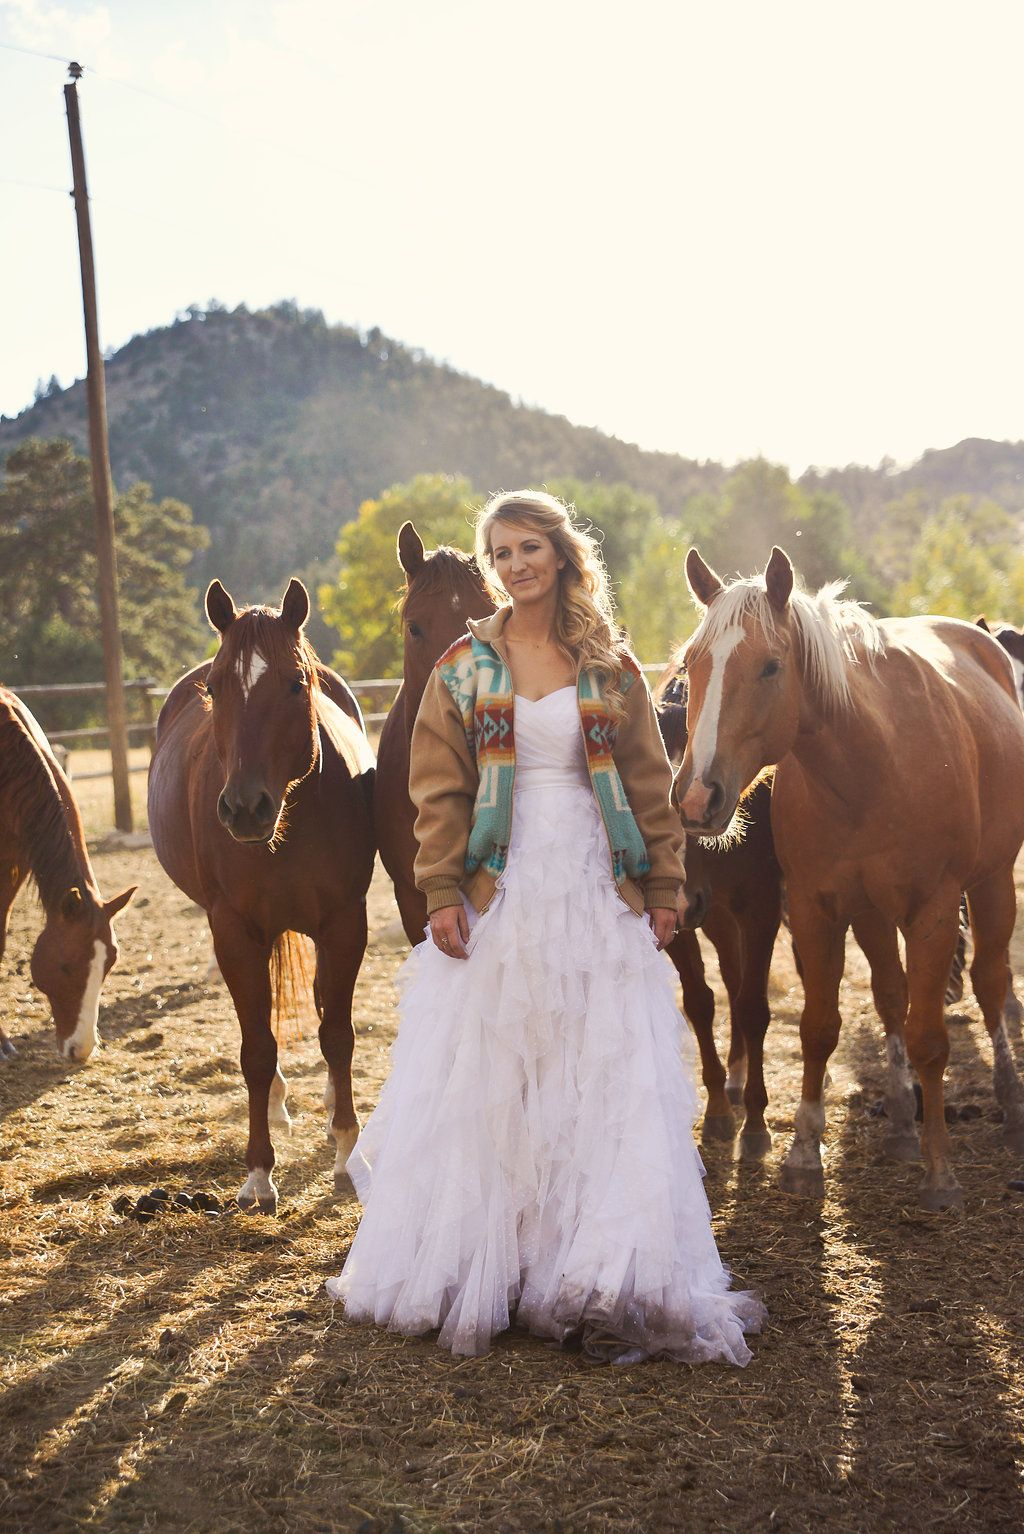 Ranch Wedding Cowboy Country Trash The Dress Cowgirl Horse Pendleton Jacket: Horse For Western Wedding Dresses At Websimilar.org